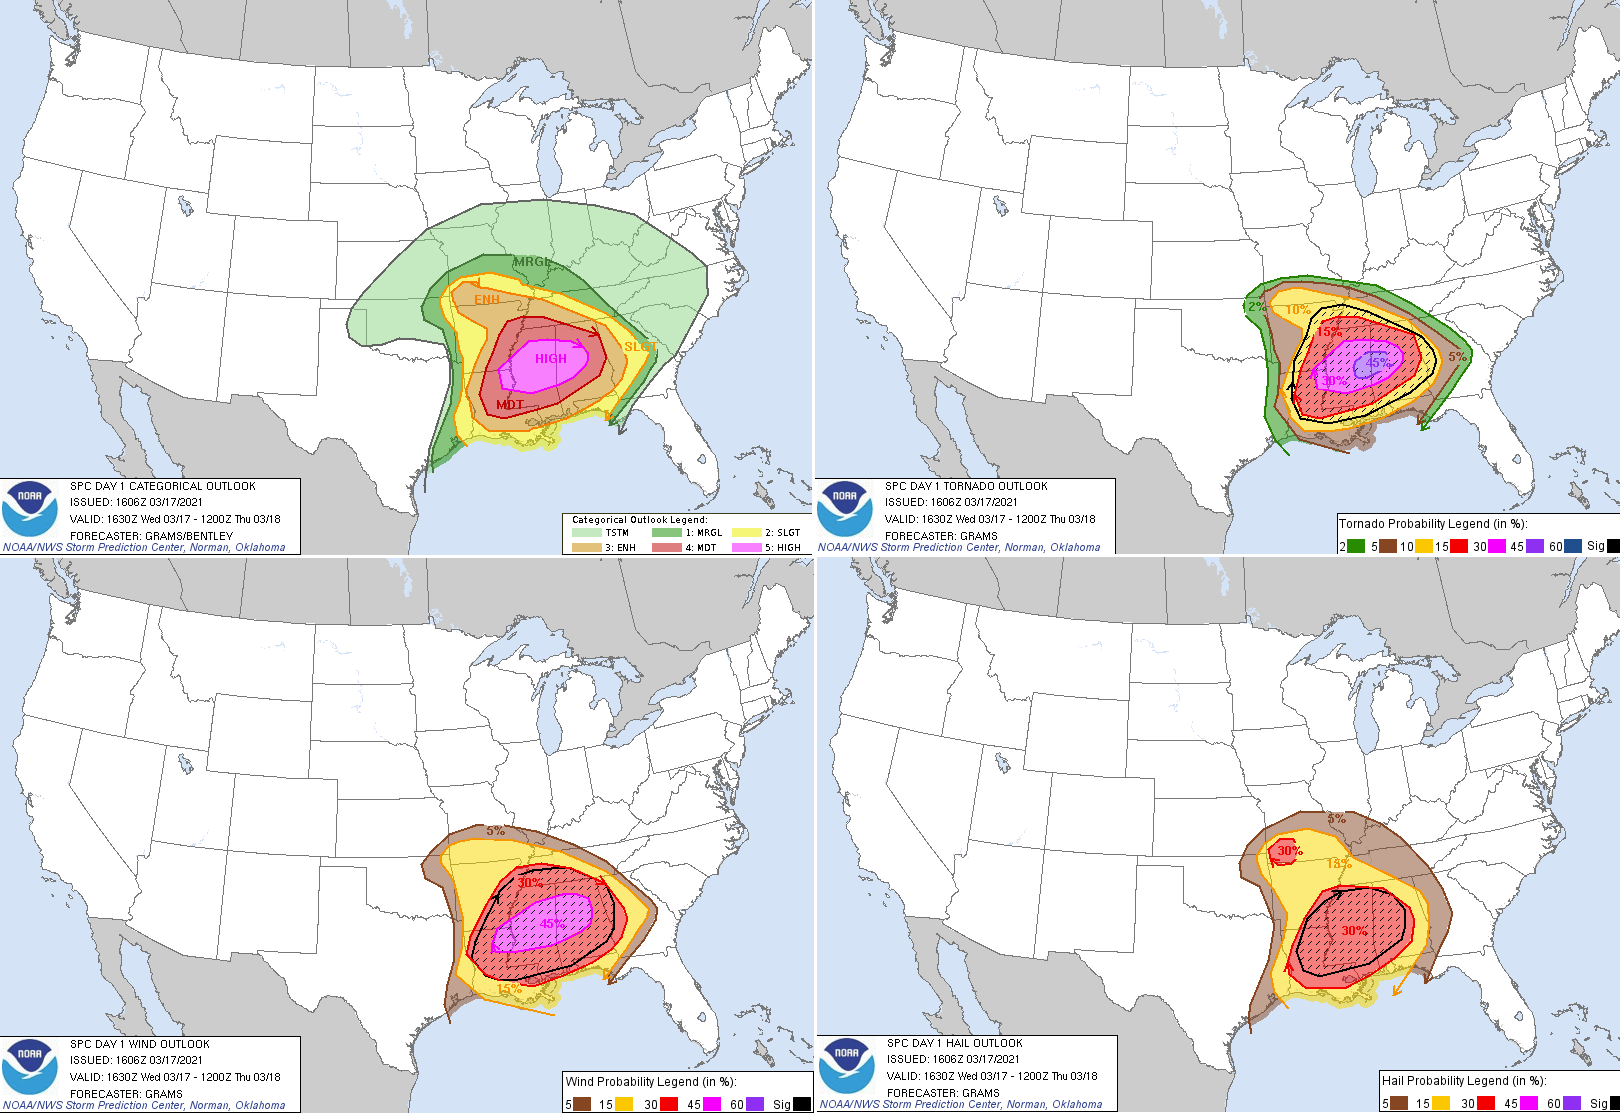 tornado-outbreak-particularly-dangerous-situation-watch-alabama-mississippi-hail-wind-threats